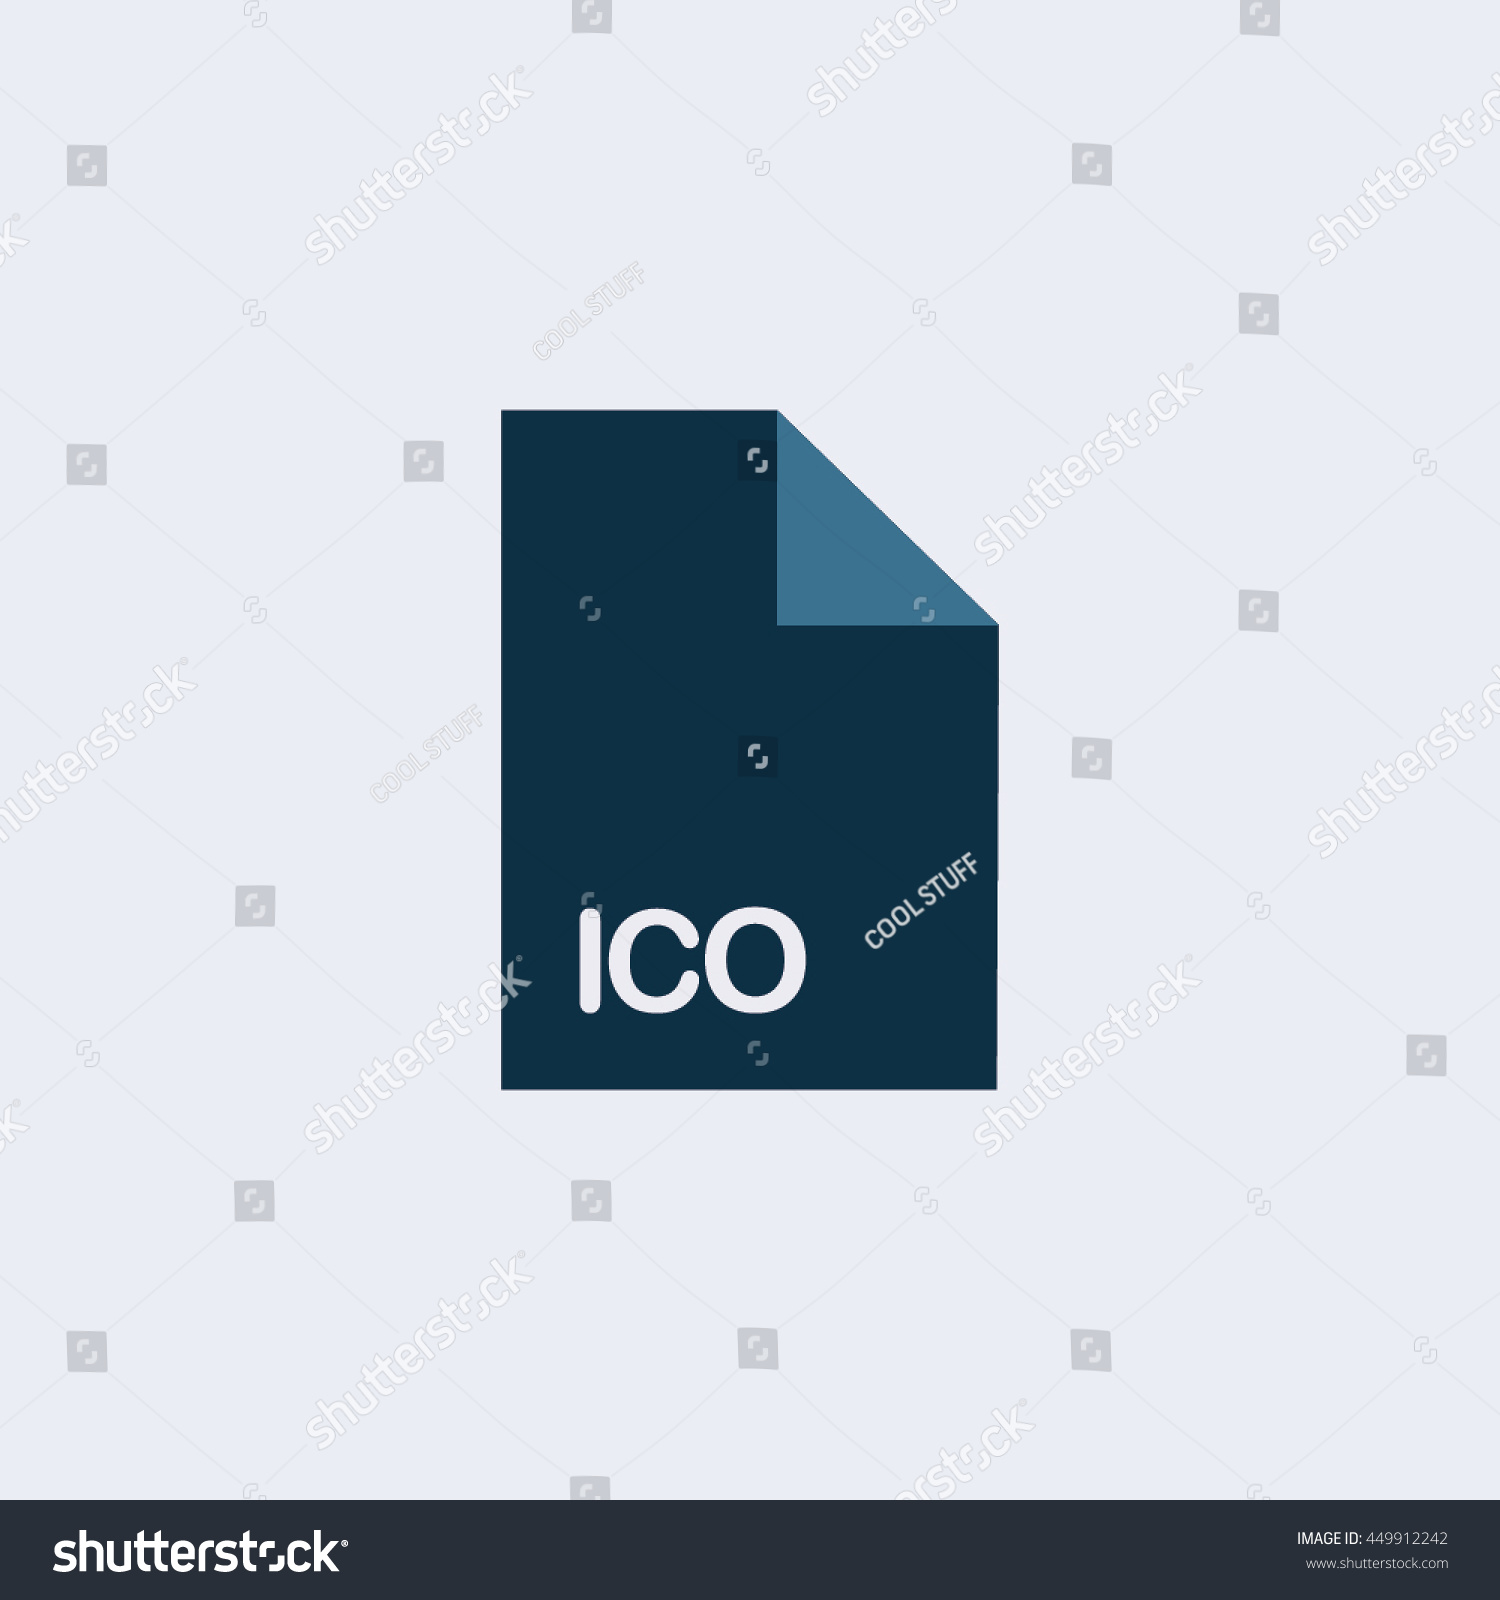 ico icon ico file iconextension icon stock vector 449912242 shutterstock. Black Bedroom Furniture Sets. Home Design Ideas